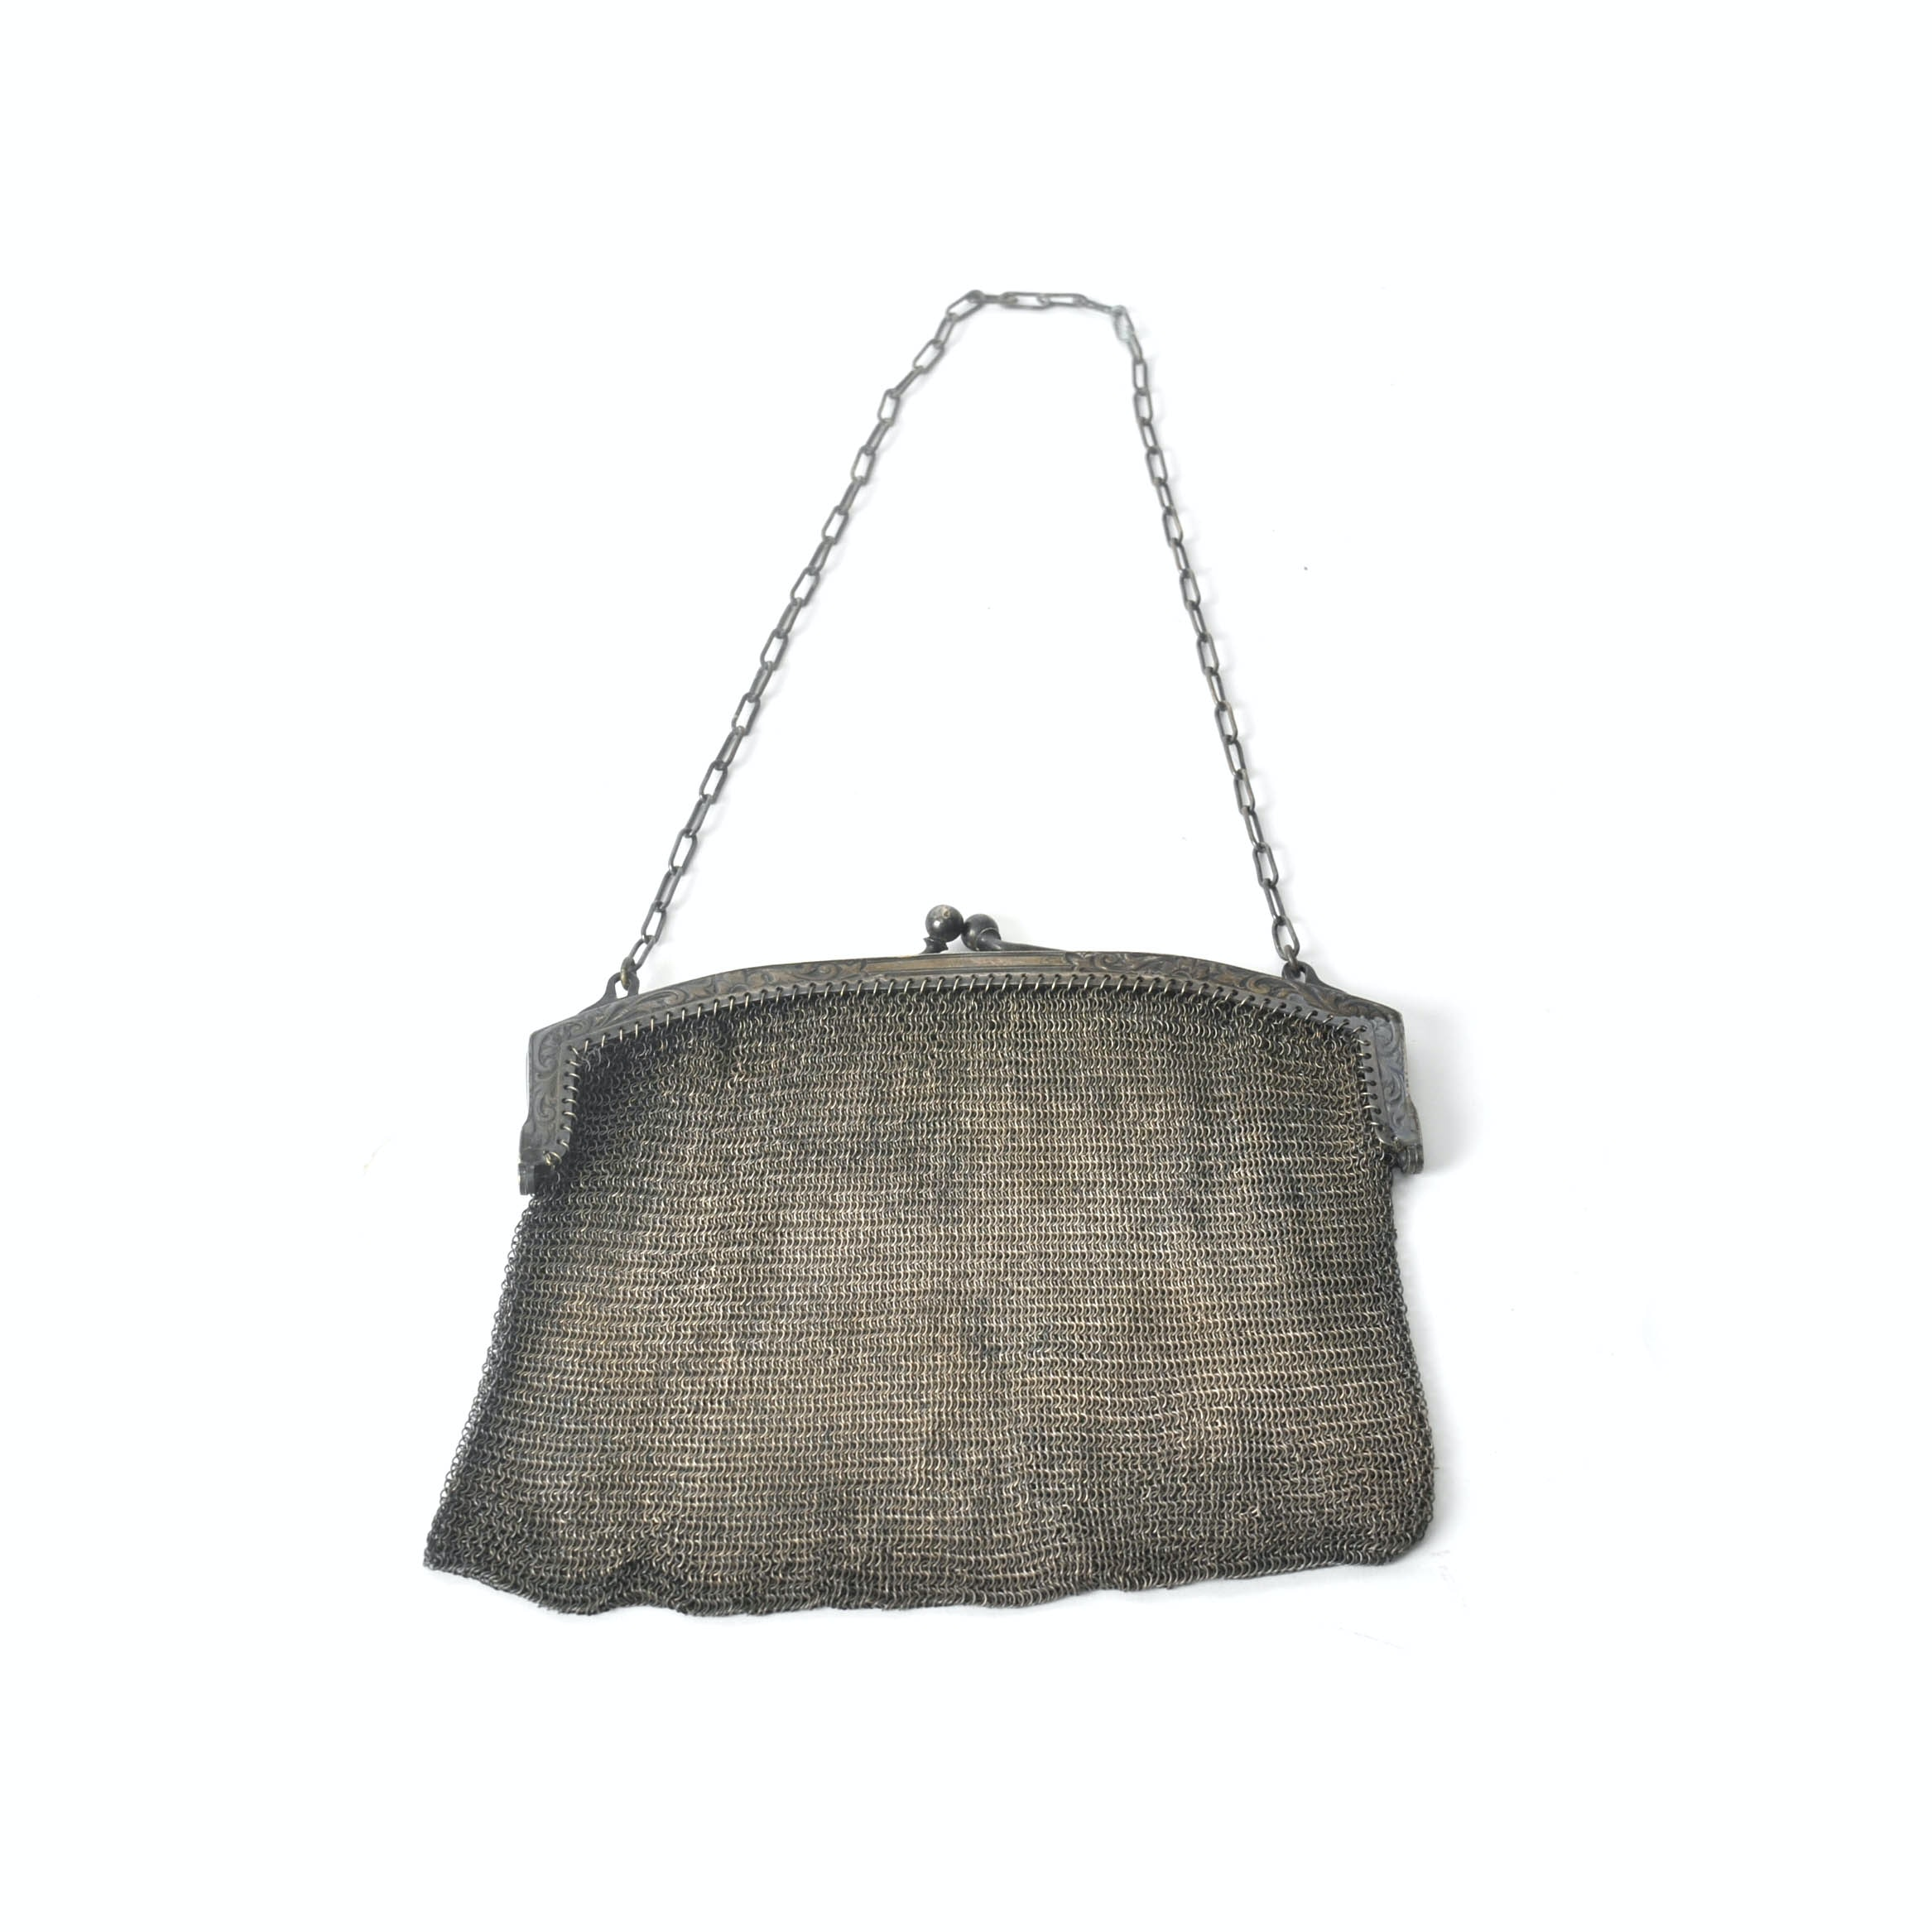 Early 20th Century Whiting & Davis Mesh Purse with Scrolled Frame and Chain